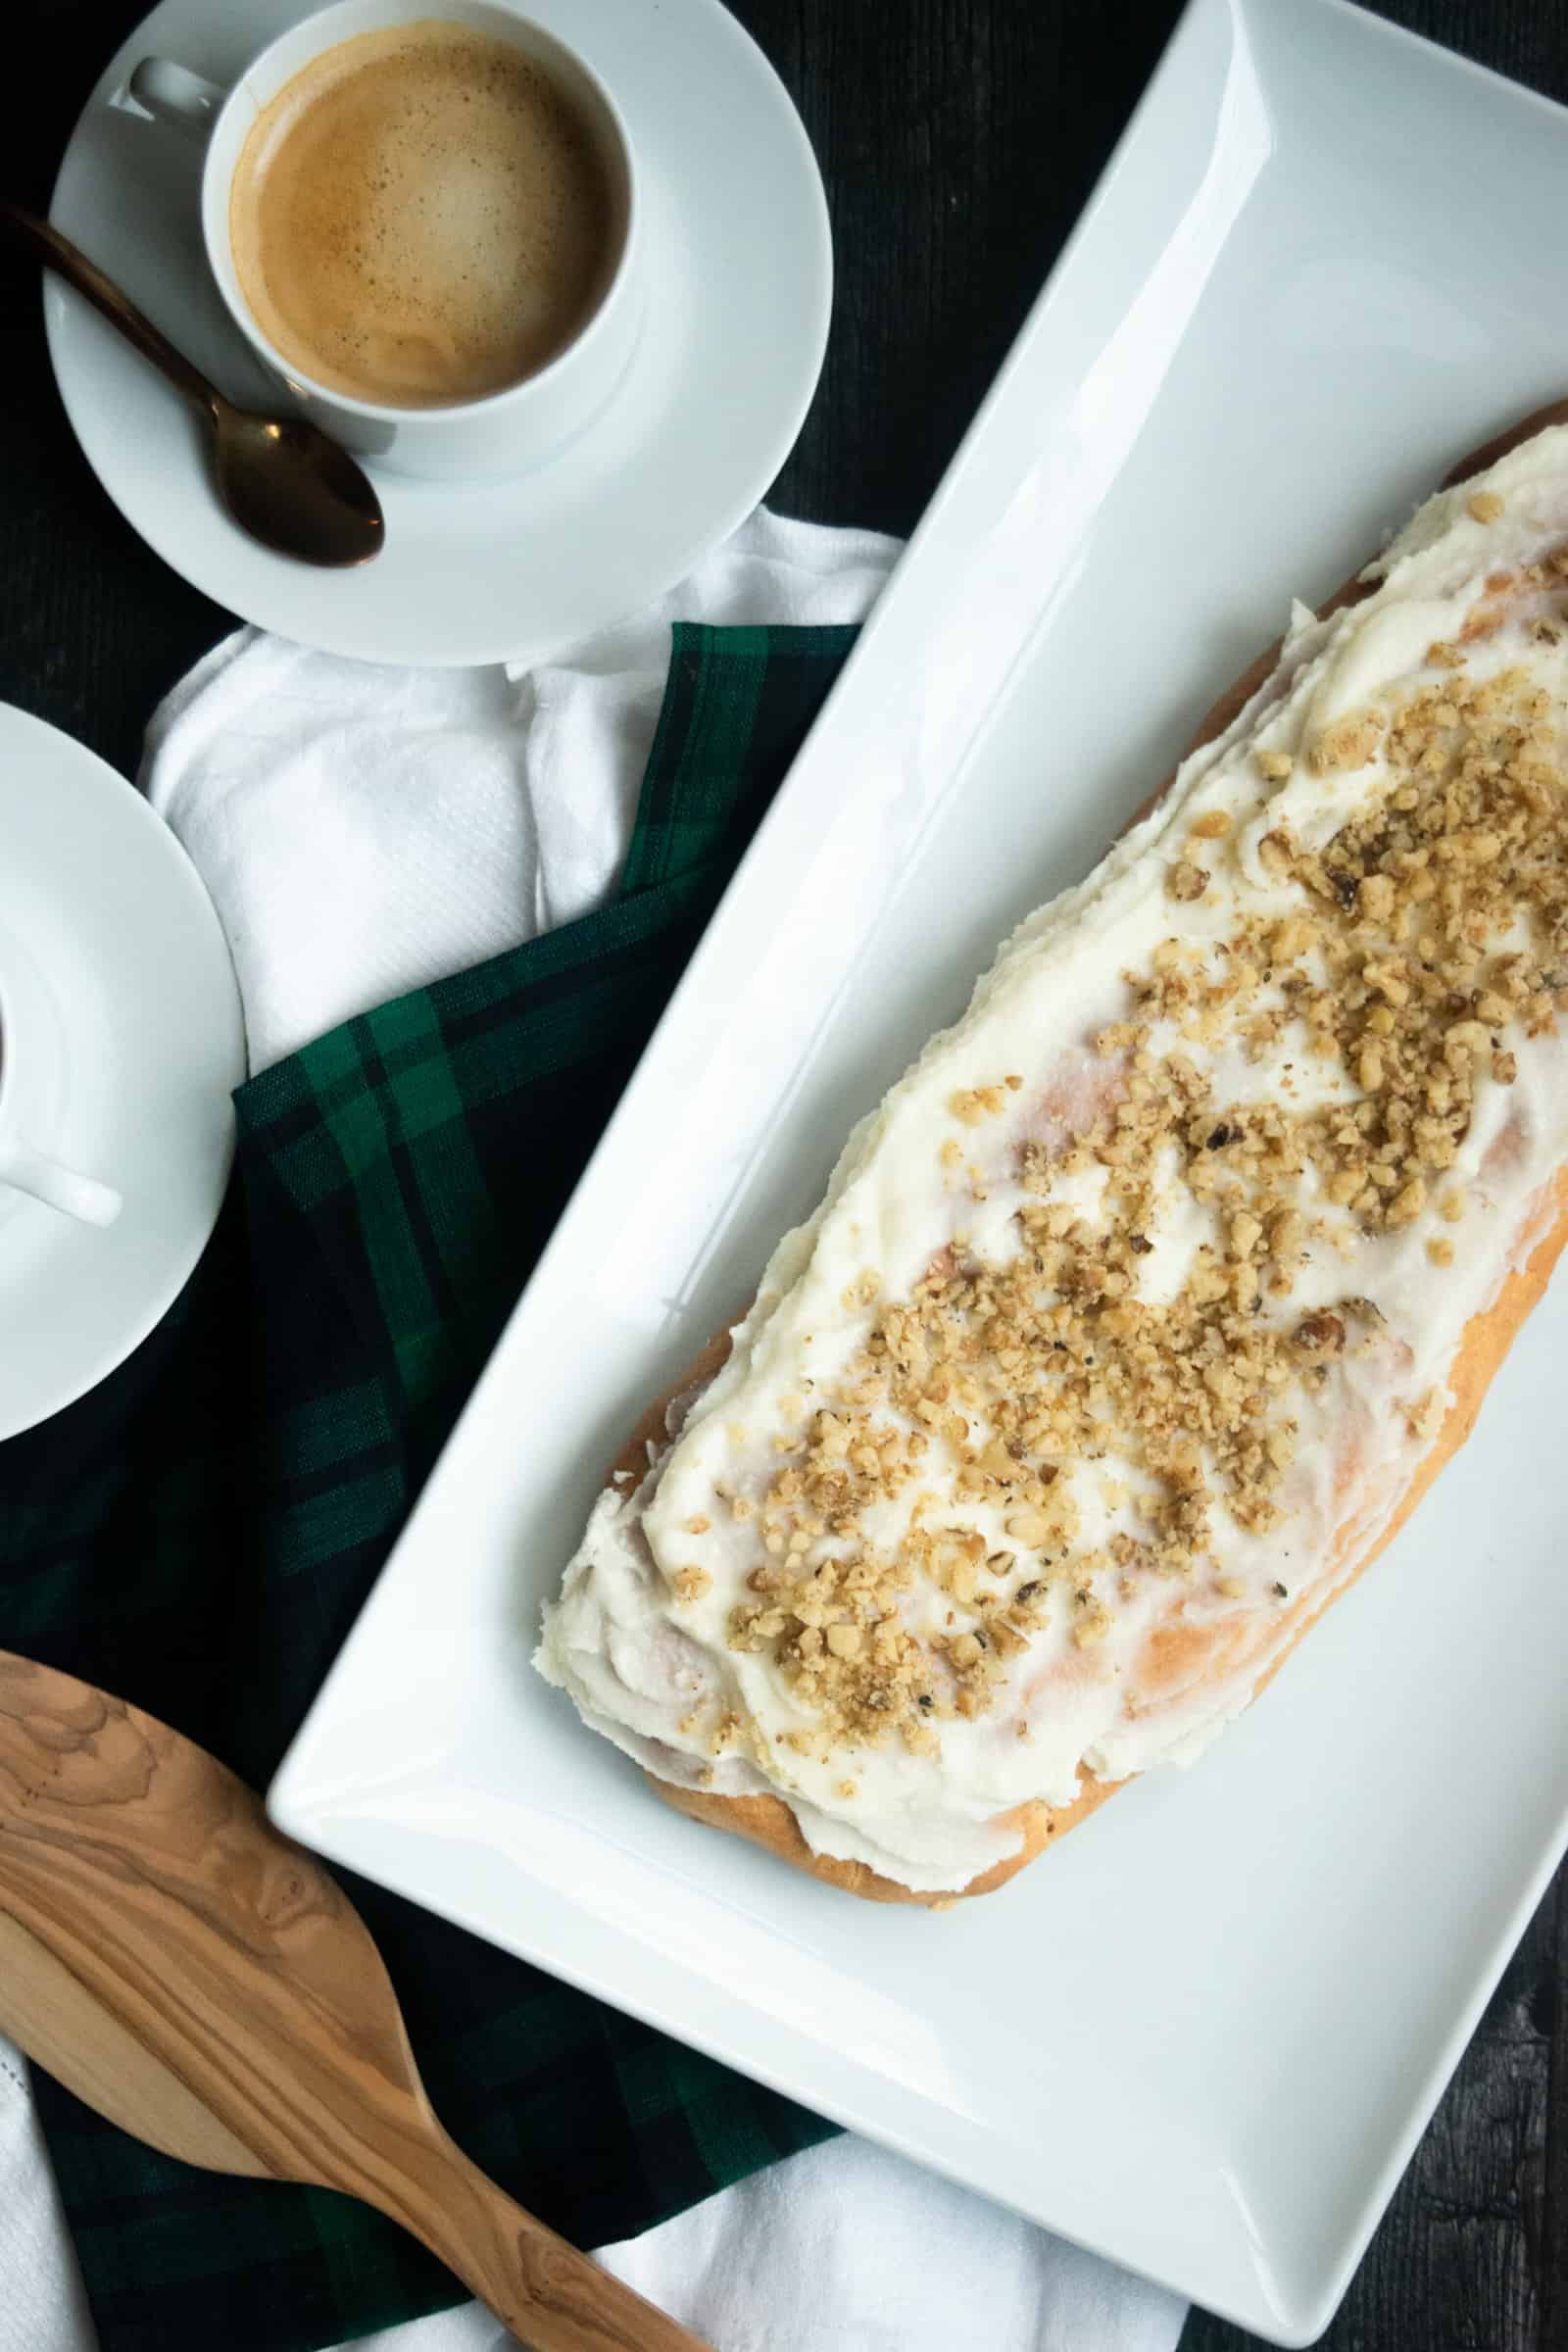 Danish puff pastry on a white platter with a cup of coffee in the background on a blackwatch plaid napkin and white runner with a black background